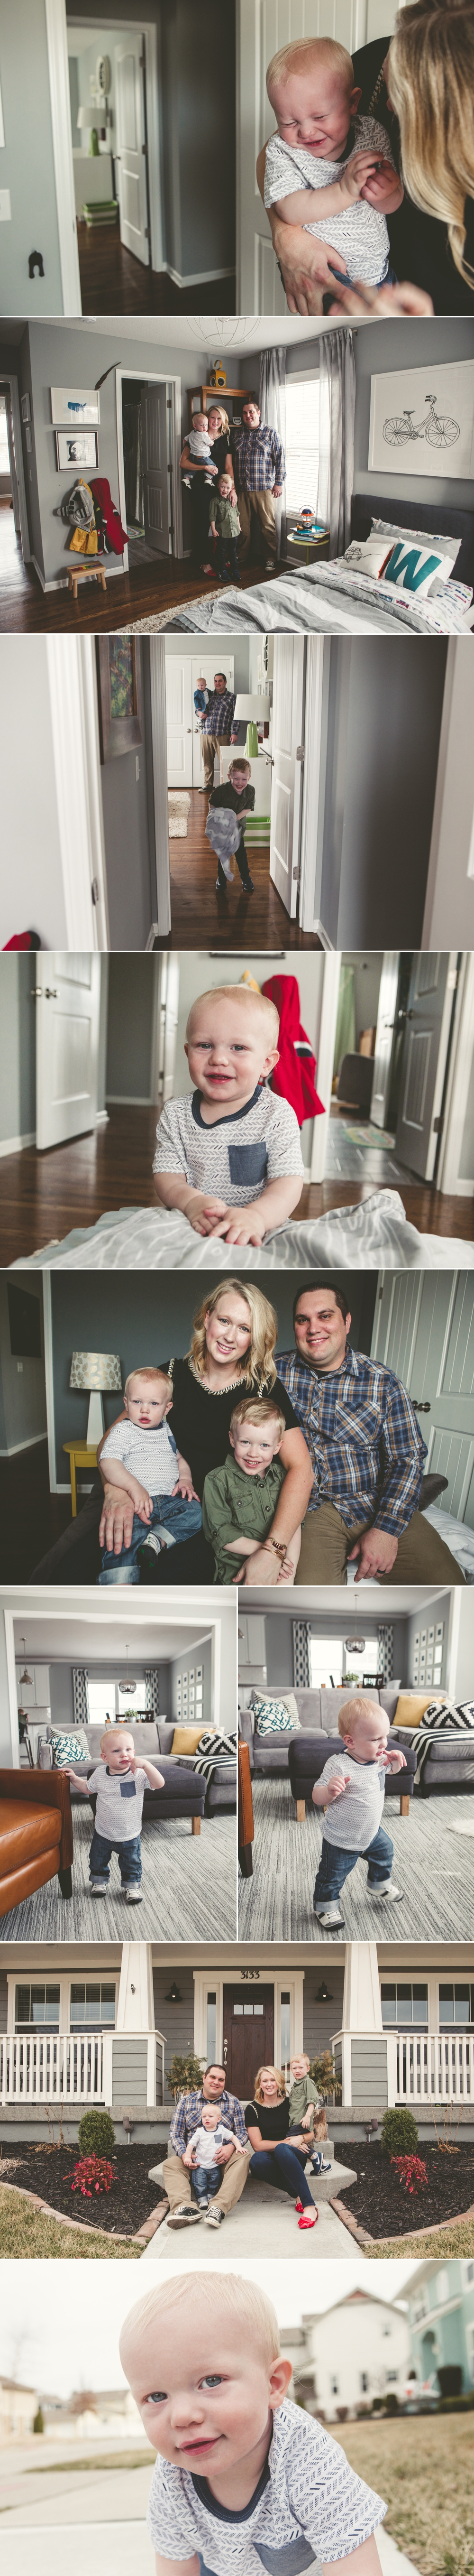 jason_domingues_photography_best_kansas_city_portrait_photographer_family_photos_2